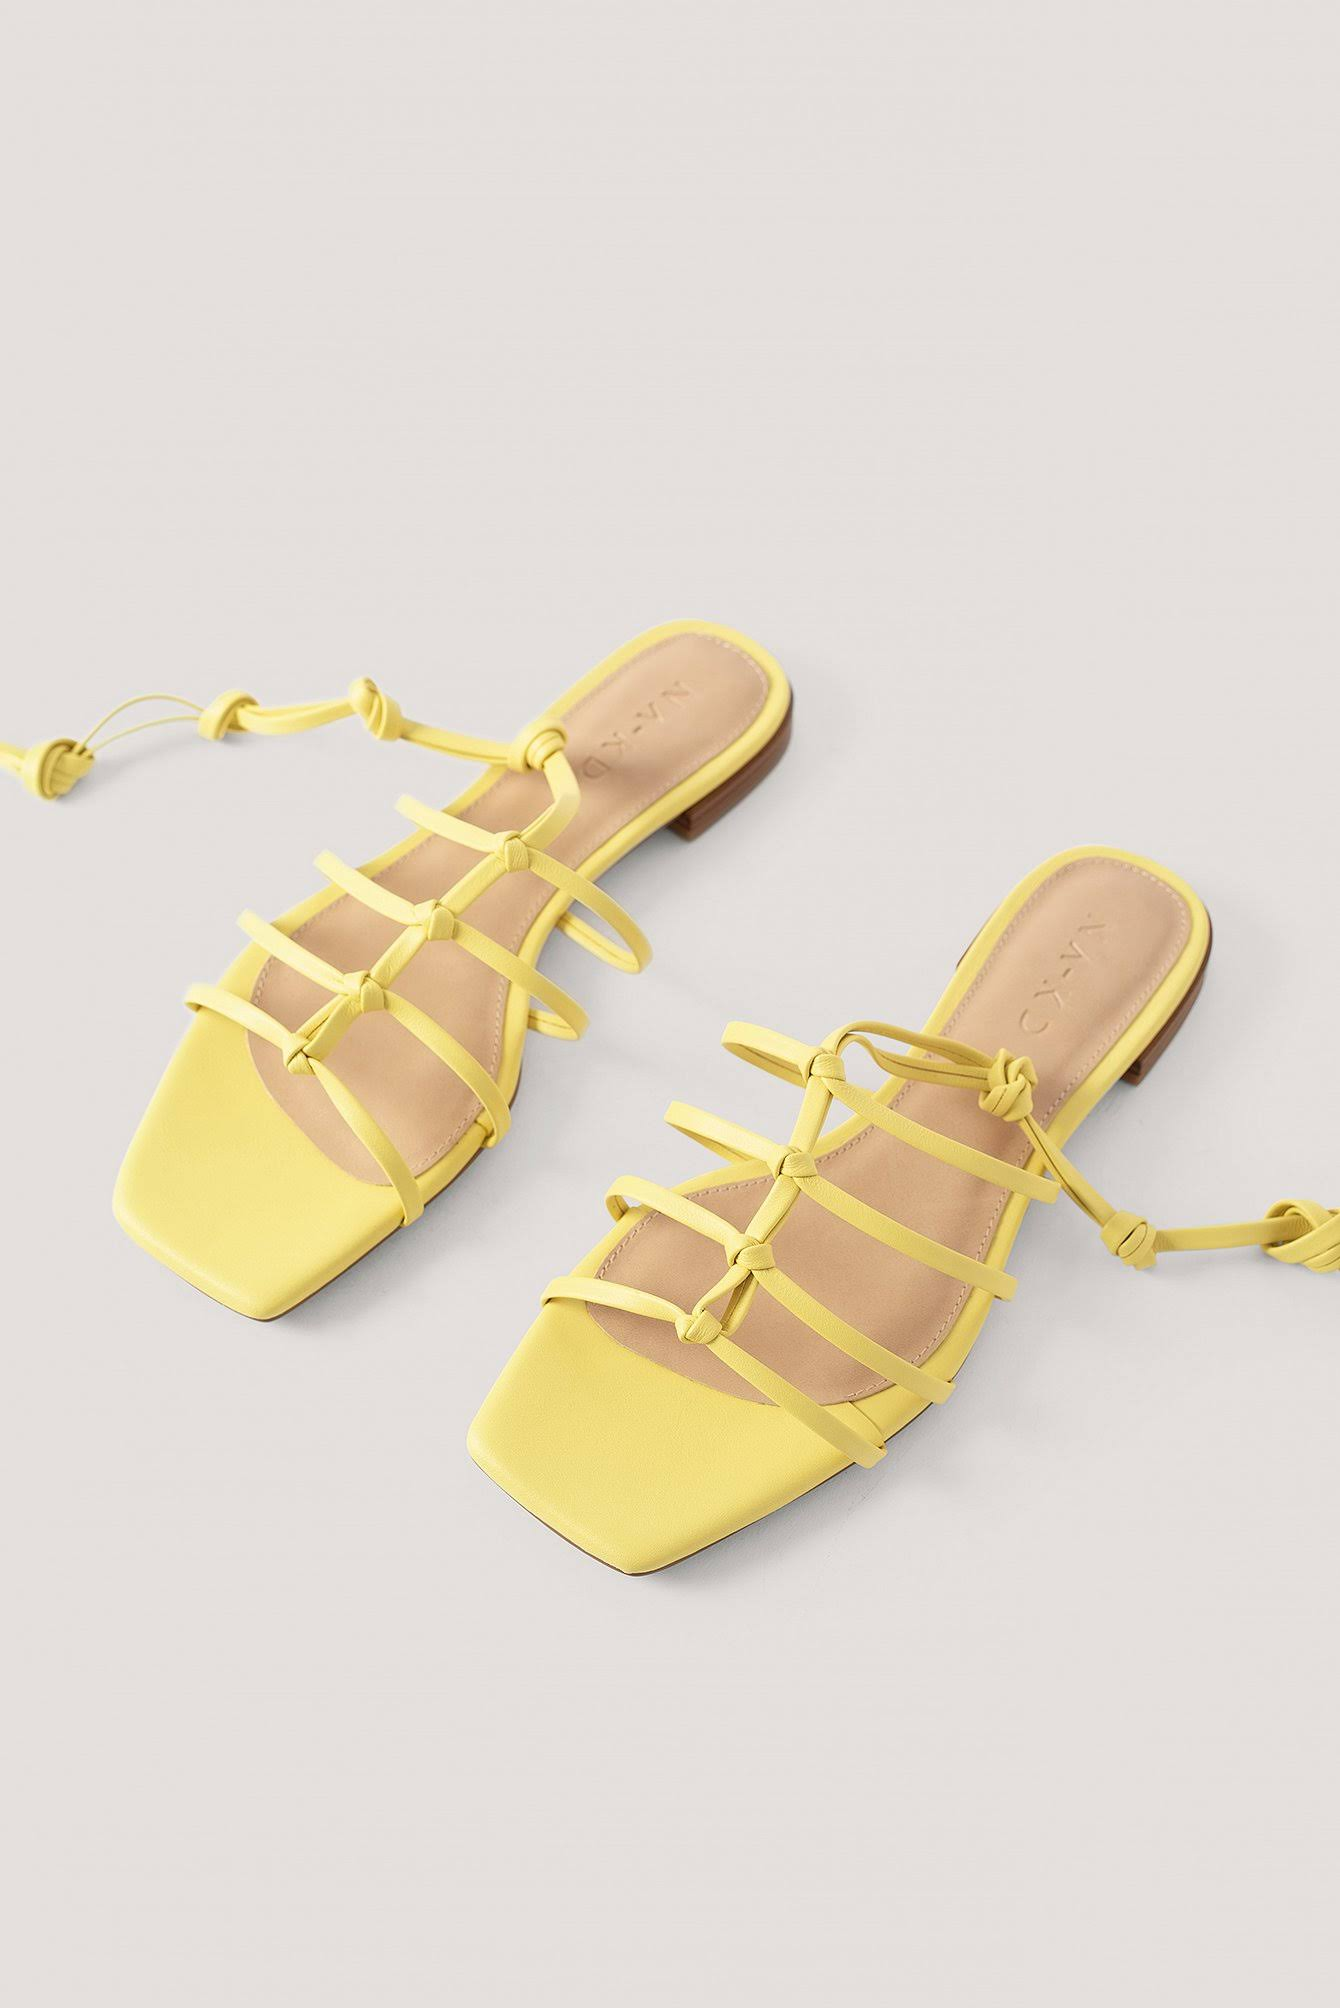 NA-KD Shoes - Sandals - Yellow - Crossed Straps Flats  NDHyiV